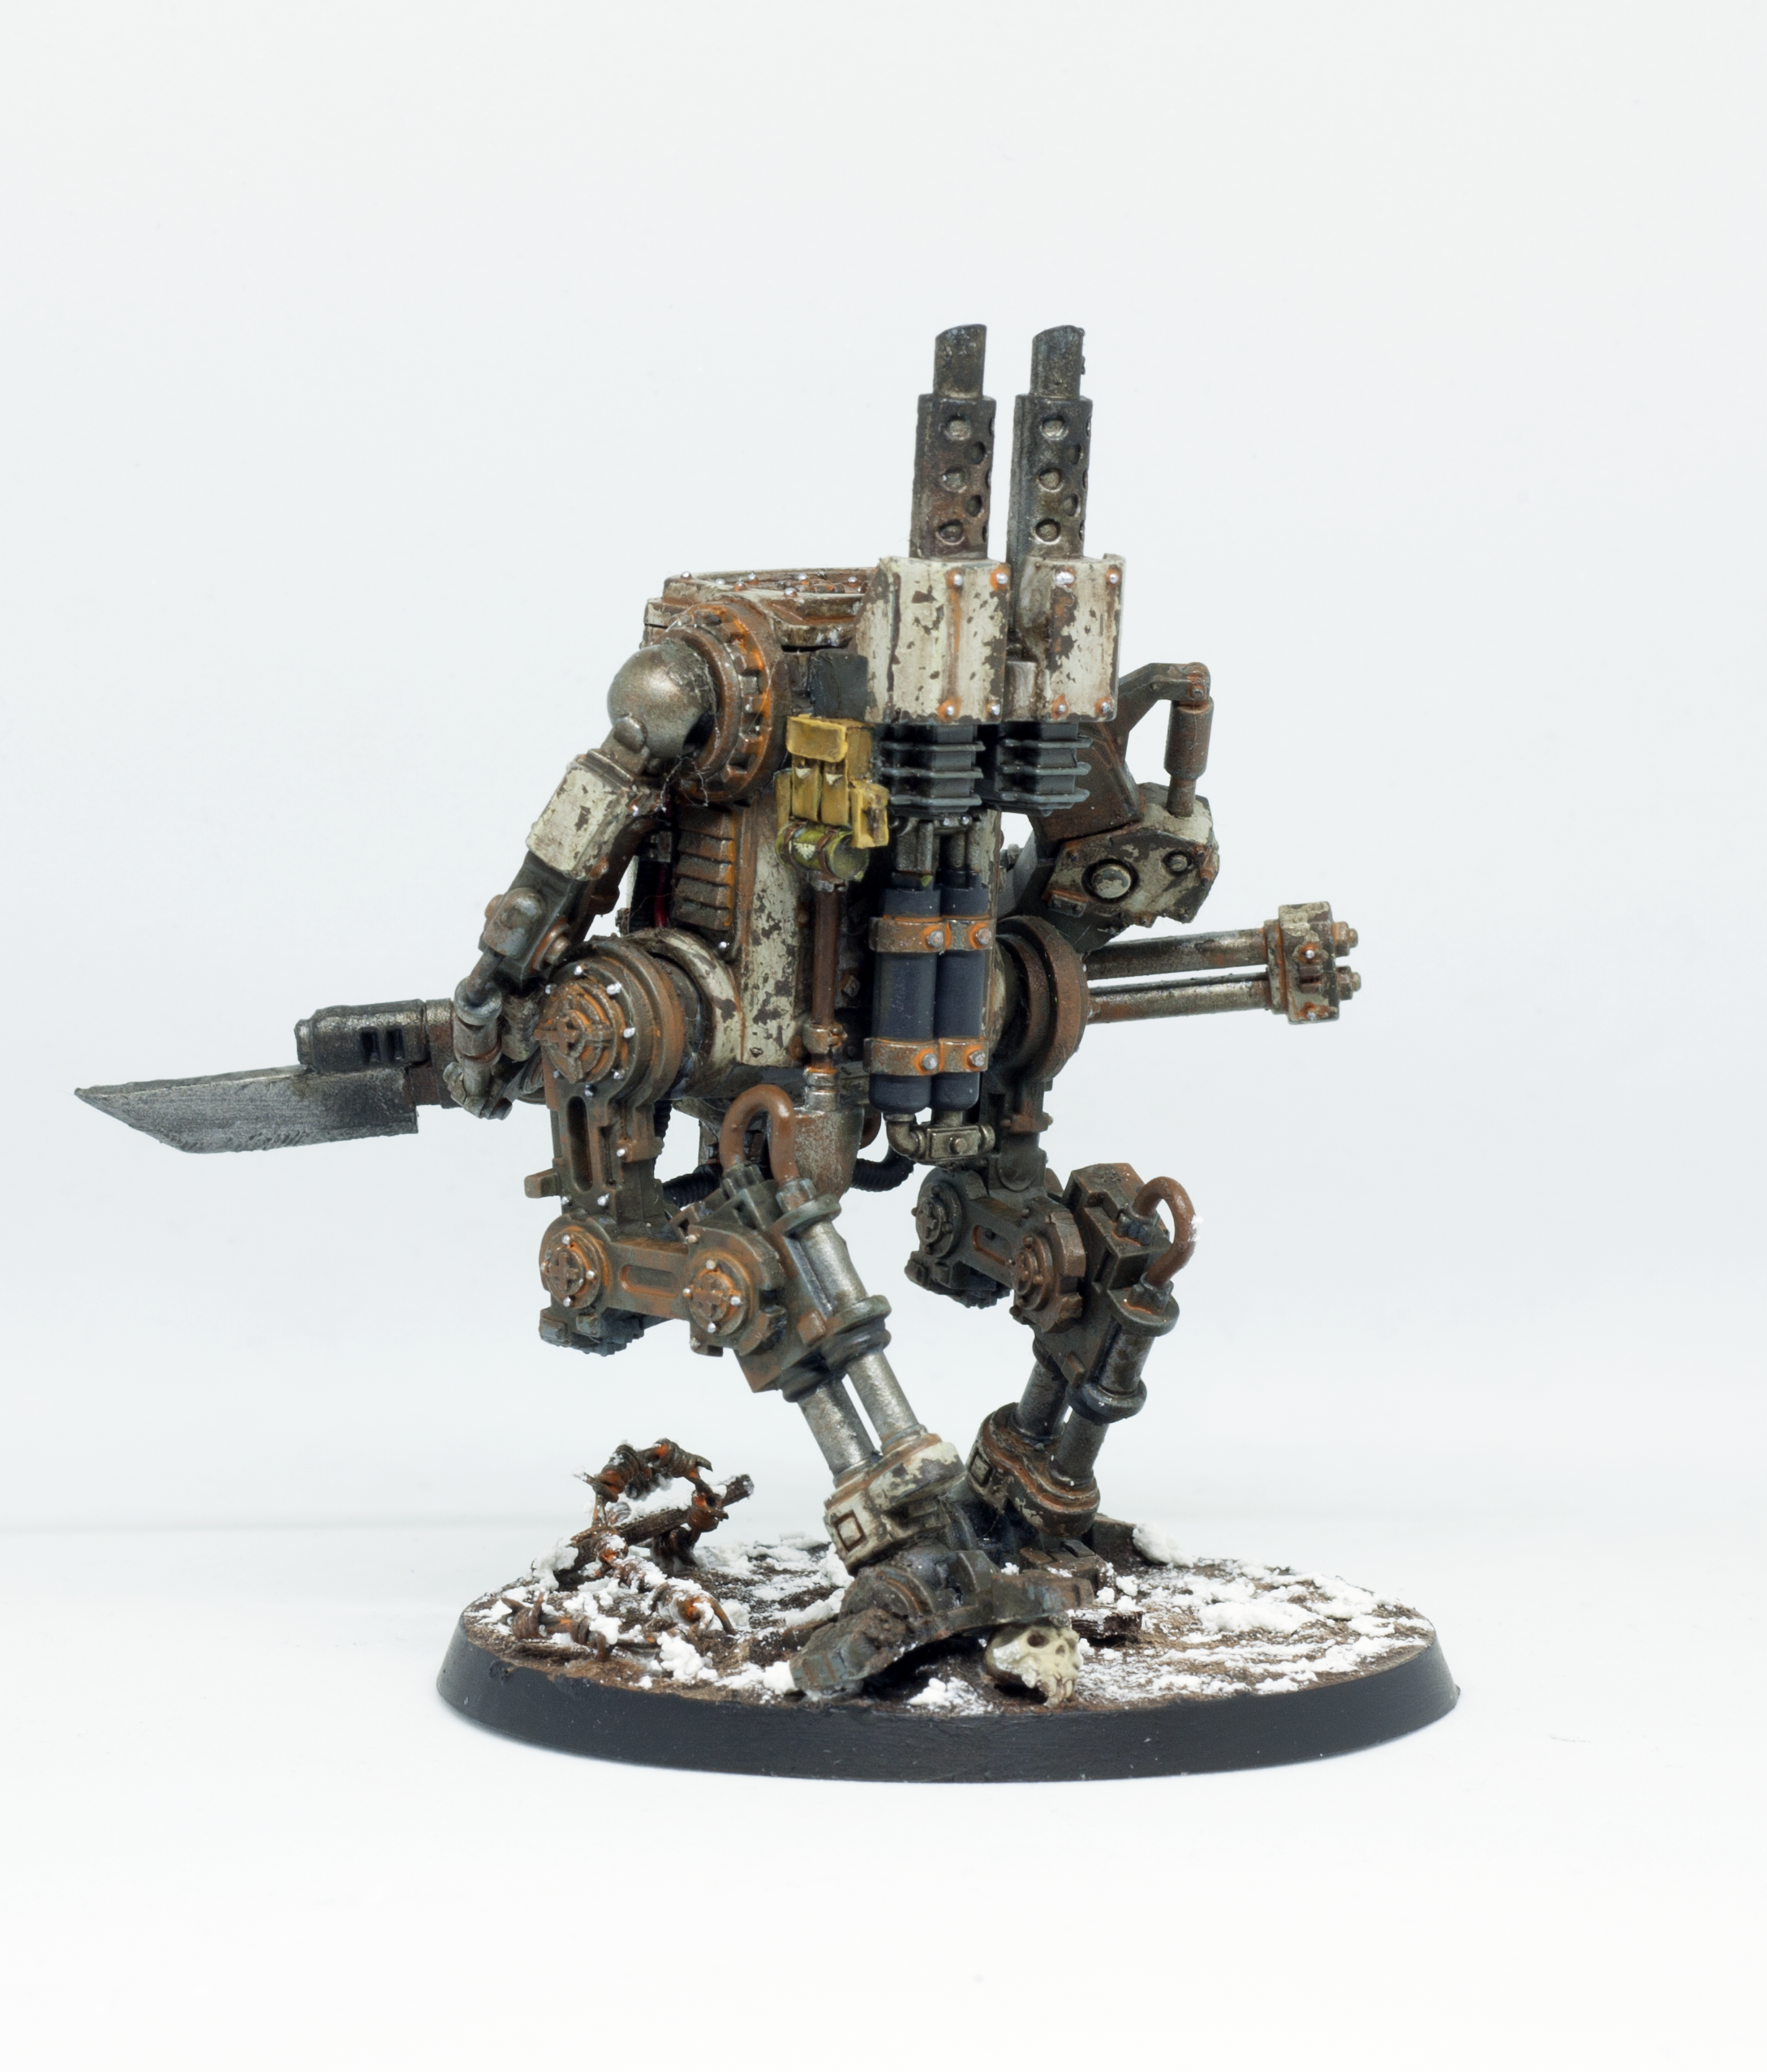 Barbed Wire, Conversion, Death Korps of Krieg, Heavy Support, Kitbash, Rust, Sentinel, Snow, Walker, Warhammer 40,000, Weathered